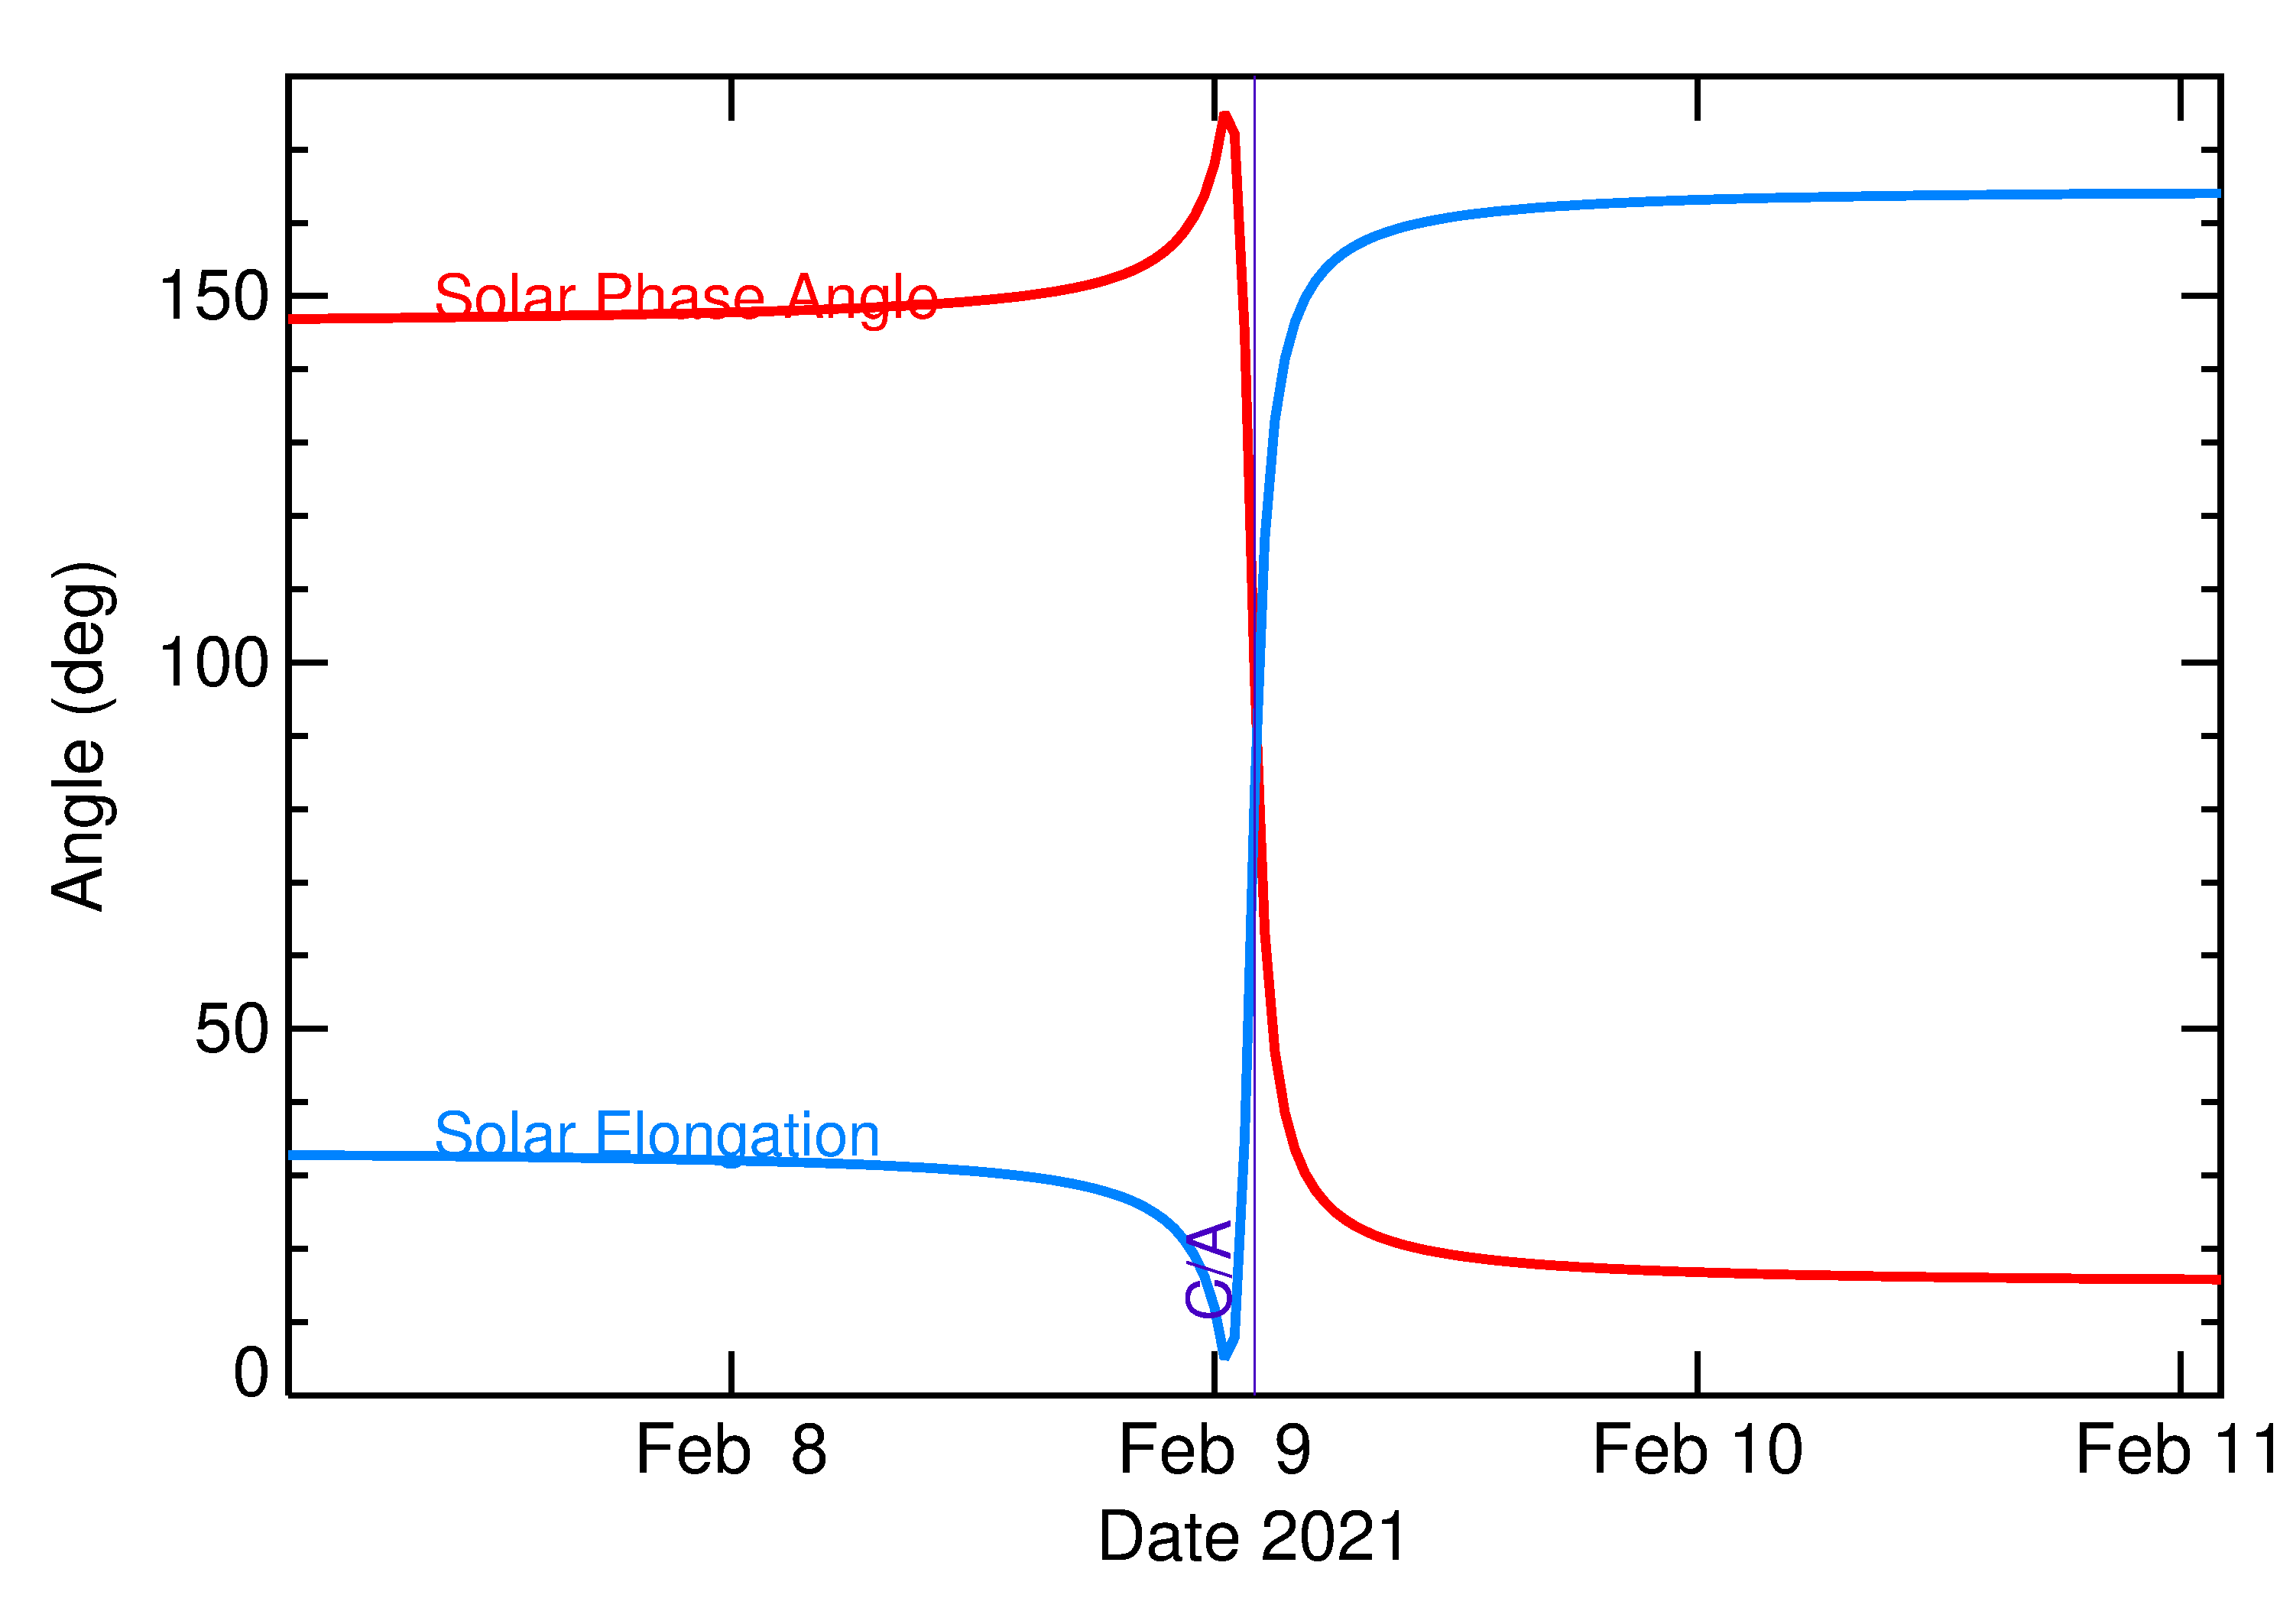 Solar Elongation and Solar Phase Angle of 2021 CZ3 in the days around closest approach